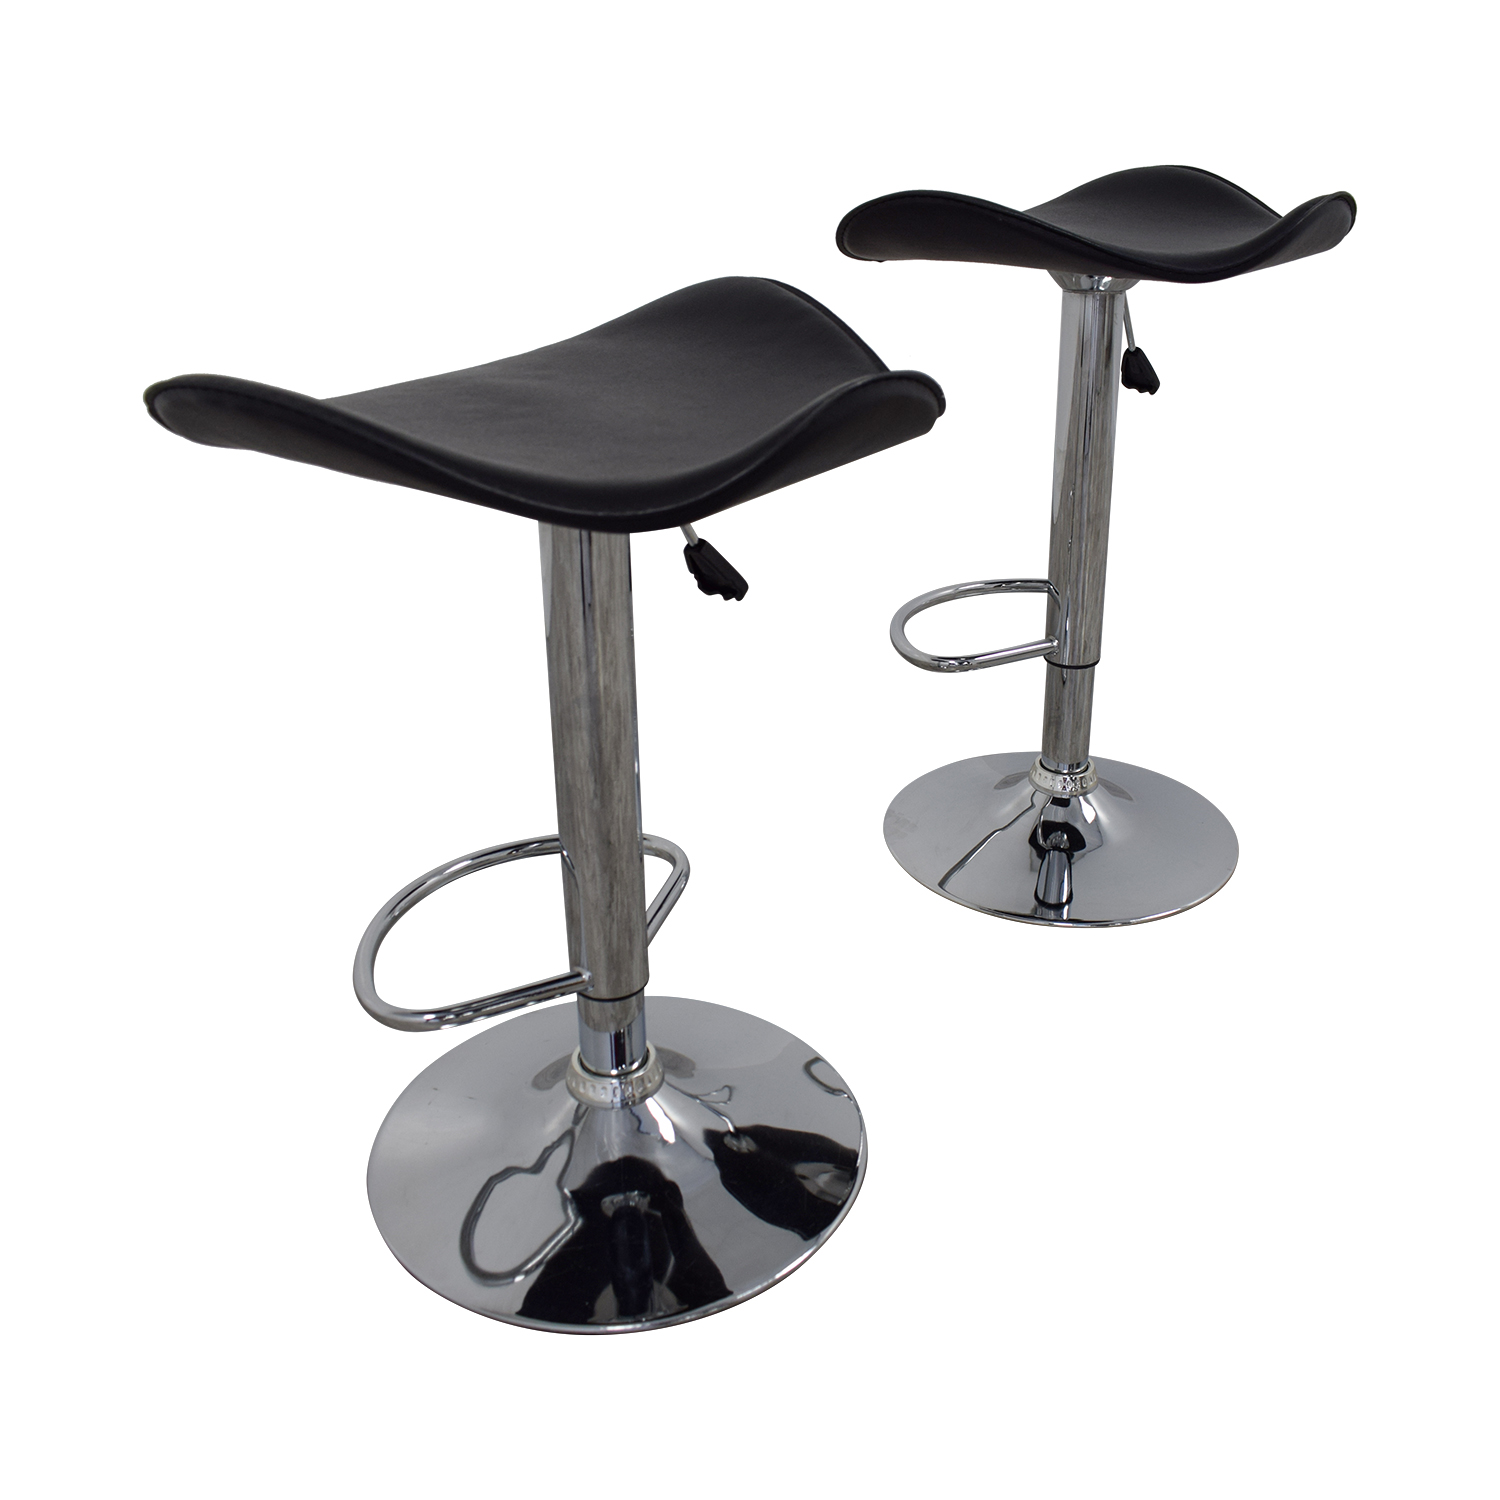 Cool 71 Off Black Leather And Chrome Adjustable Bar Stools Chairs Caraccident5 Cool Chair Designs And Ideas Caraccident5Info